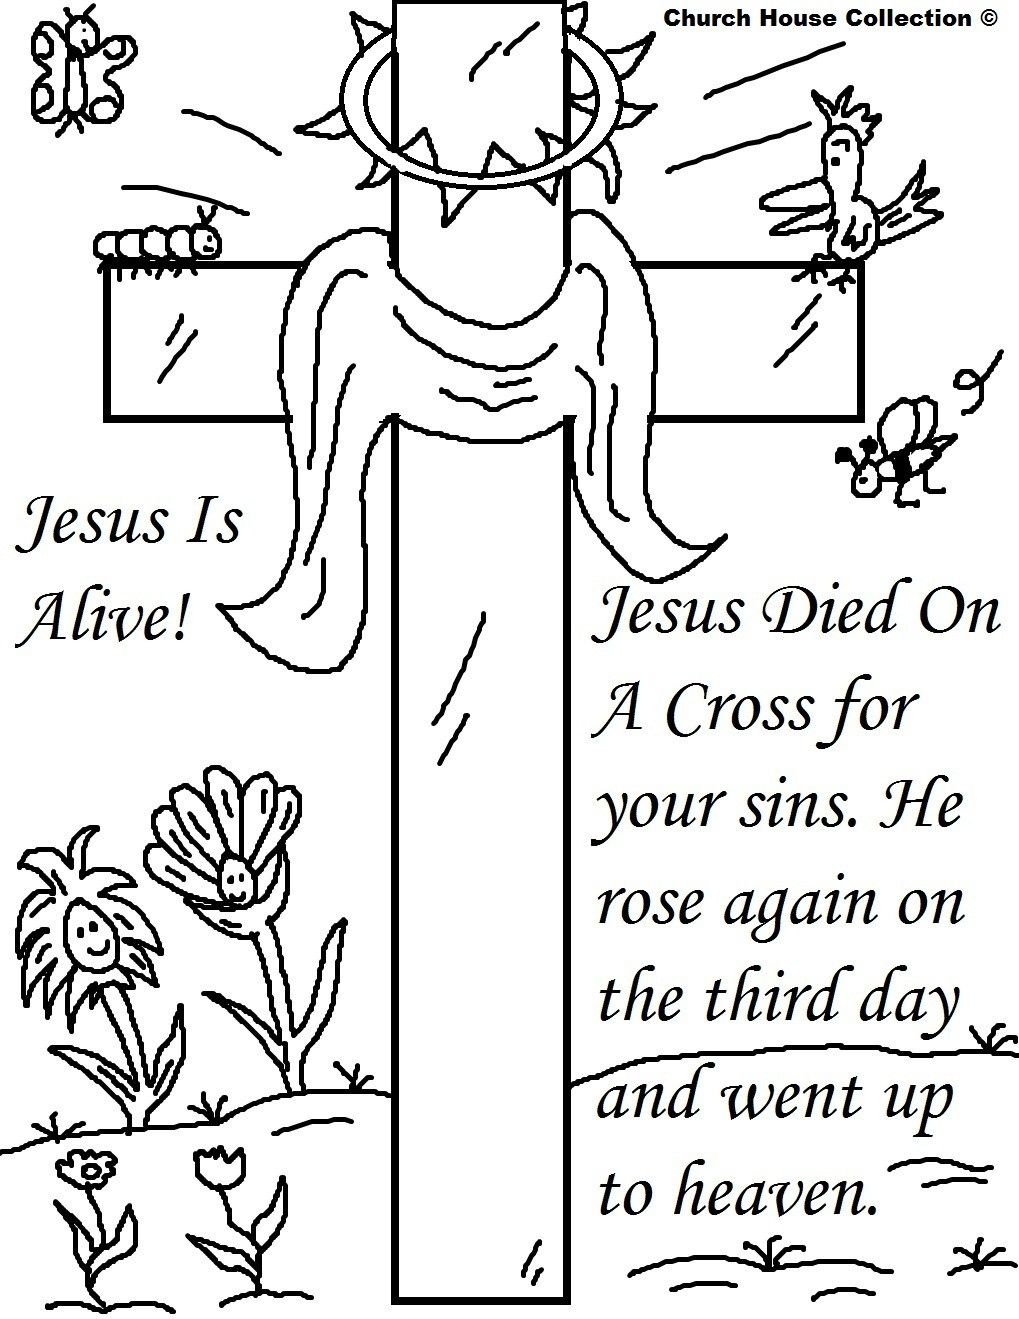 Free Christian Coloring Pages For Kids Printable Easter Sunday School Easter Coloring Pages Easter Christian